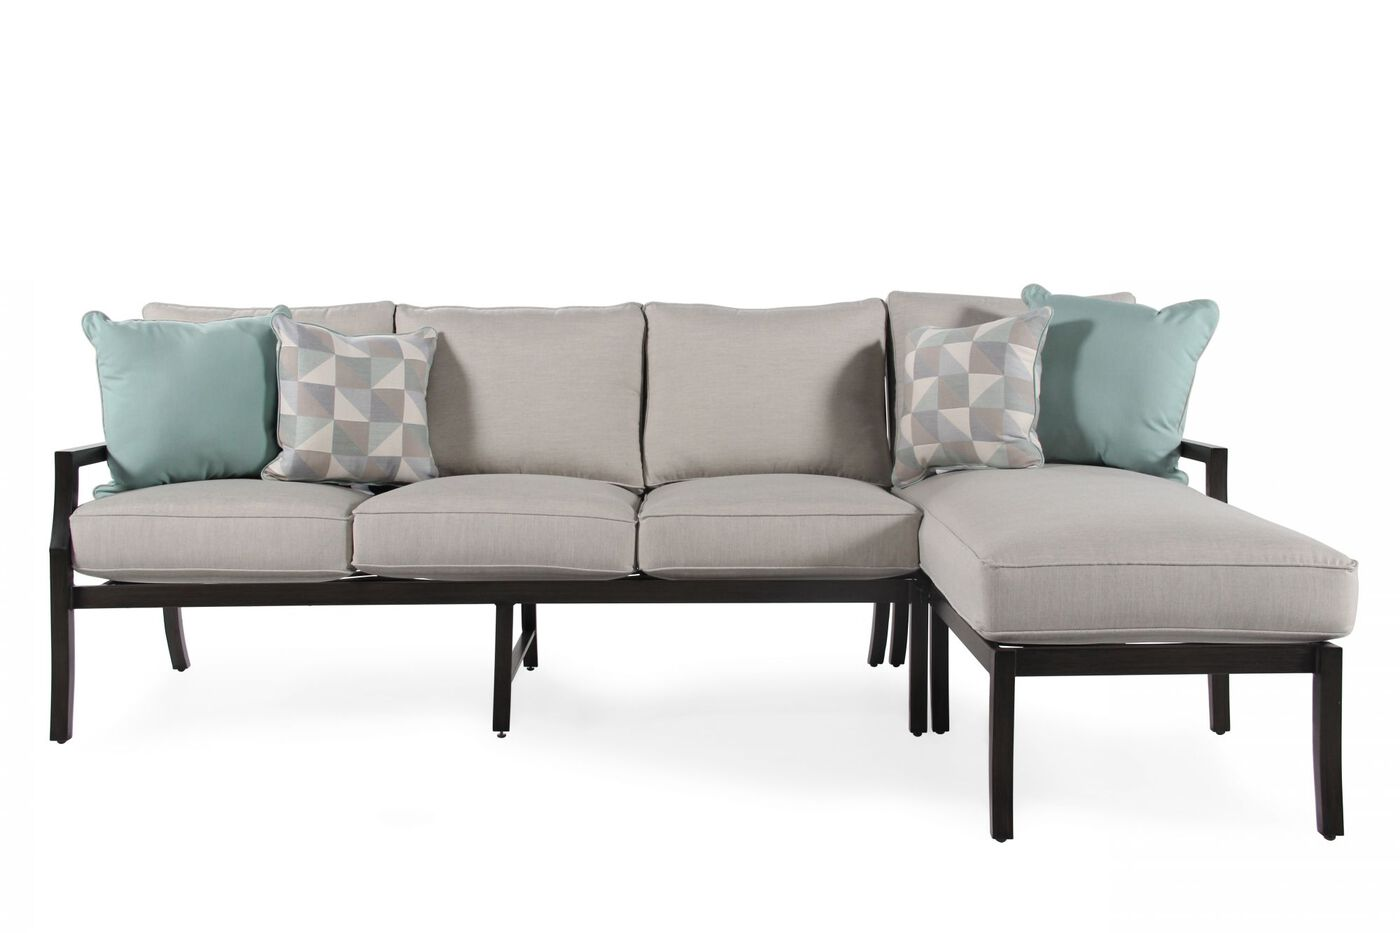 Agio Maddox Sofa and Chaise Set